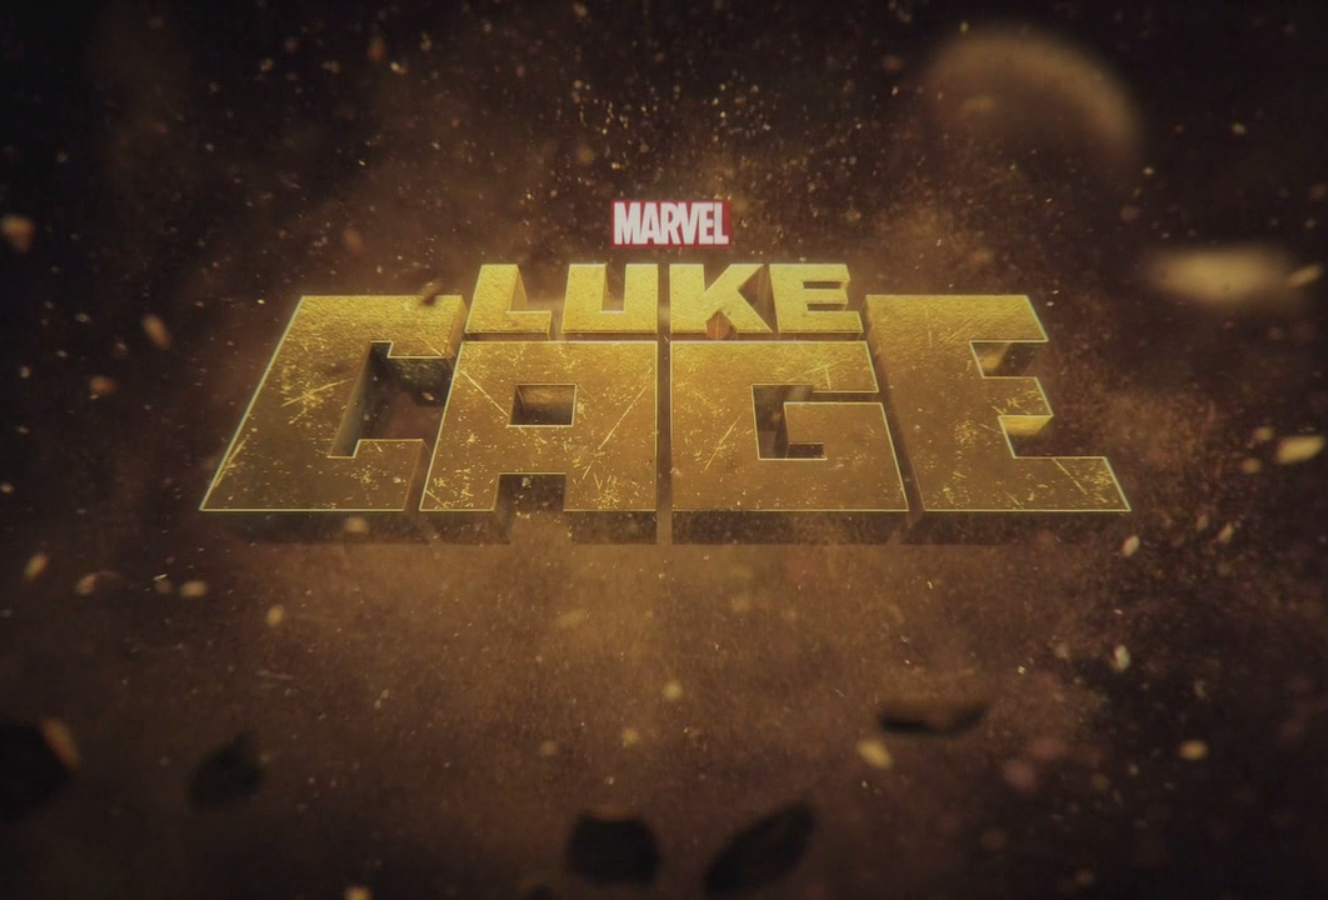 Luke cage s1 title card 3